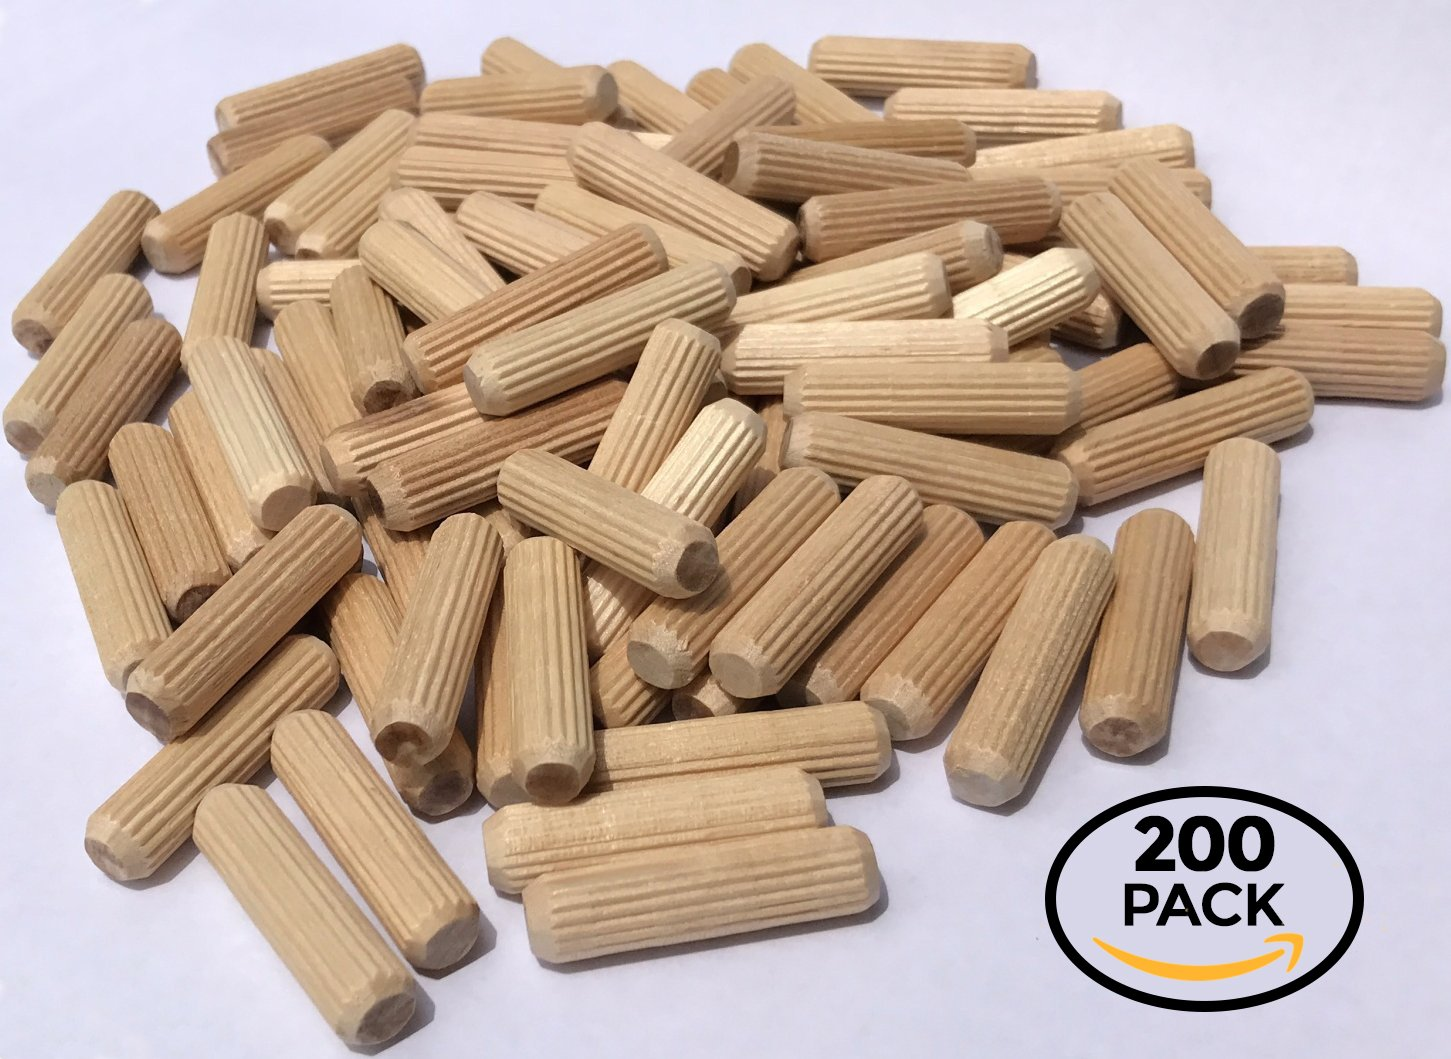 200 Pack 3/8'' x 1 1/2'' Wooden Dowel Pins Wood Kiln Dried Fluted and Beveled, Made of Hardwood in U.S.A.